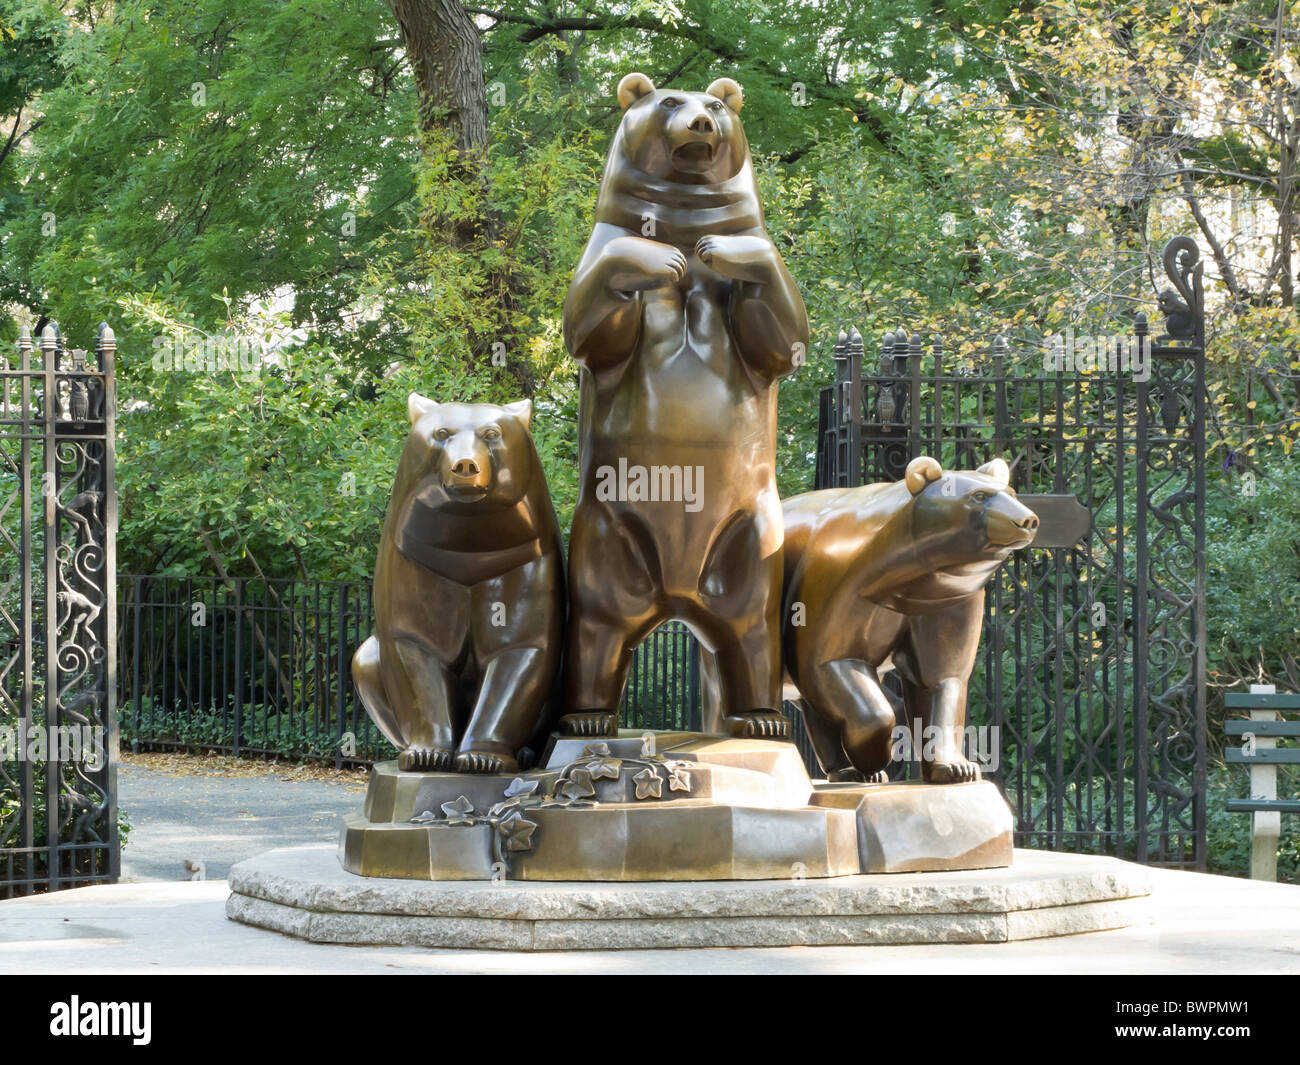 The Group Of Bears Statue Central Park Nyc Stock Photo